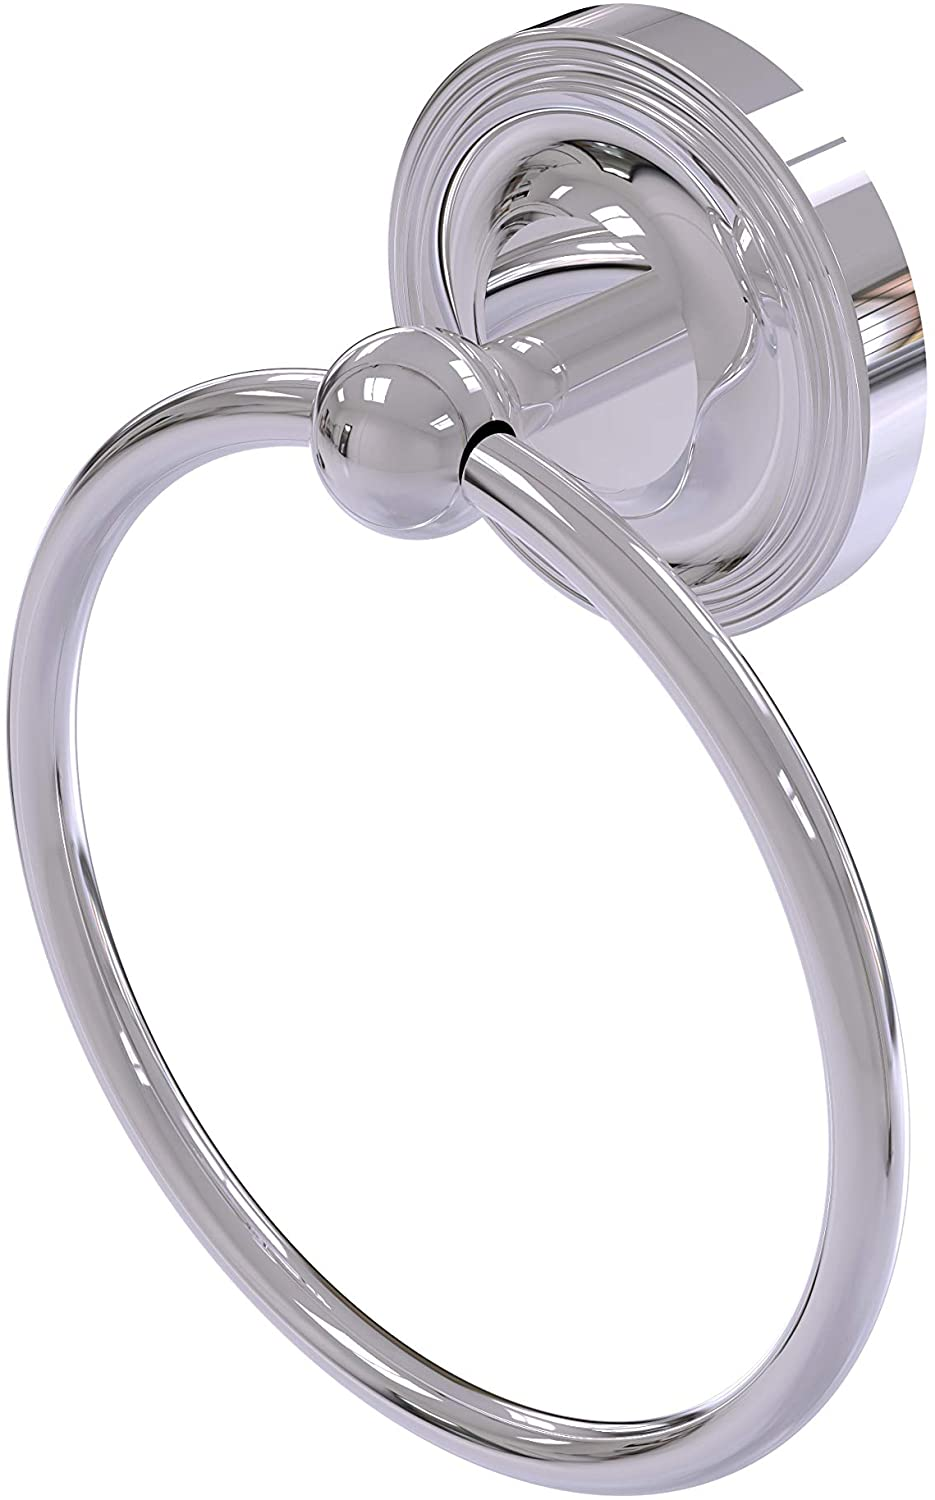 Allied Brass R-16 Regal Collection Towel Ring, Polished Chrome